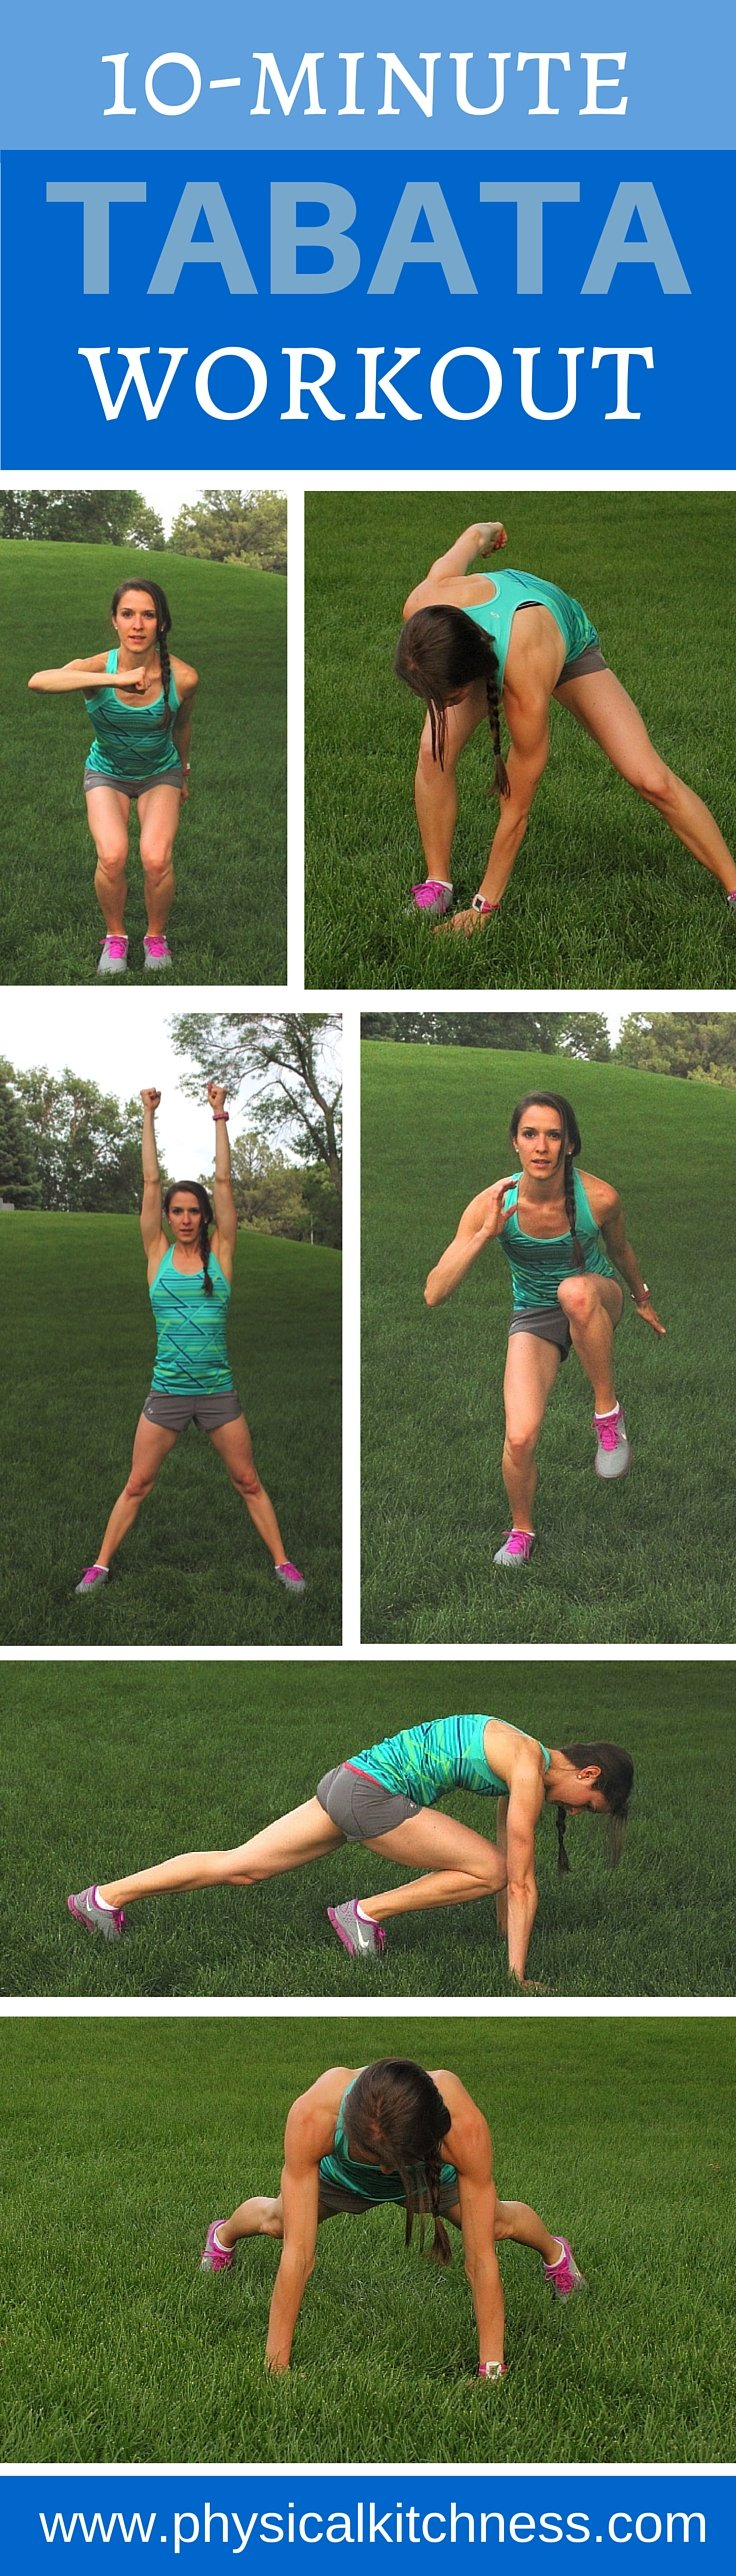 Need a quick, calorie-burning cardio workout? Try this at-home 10-minute Tabata